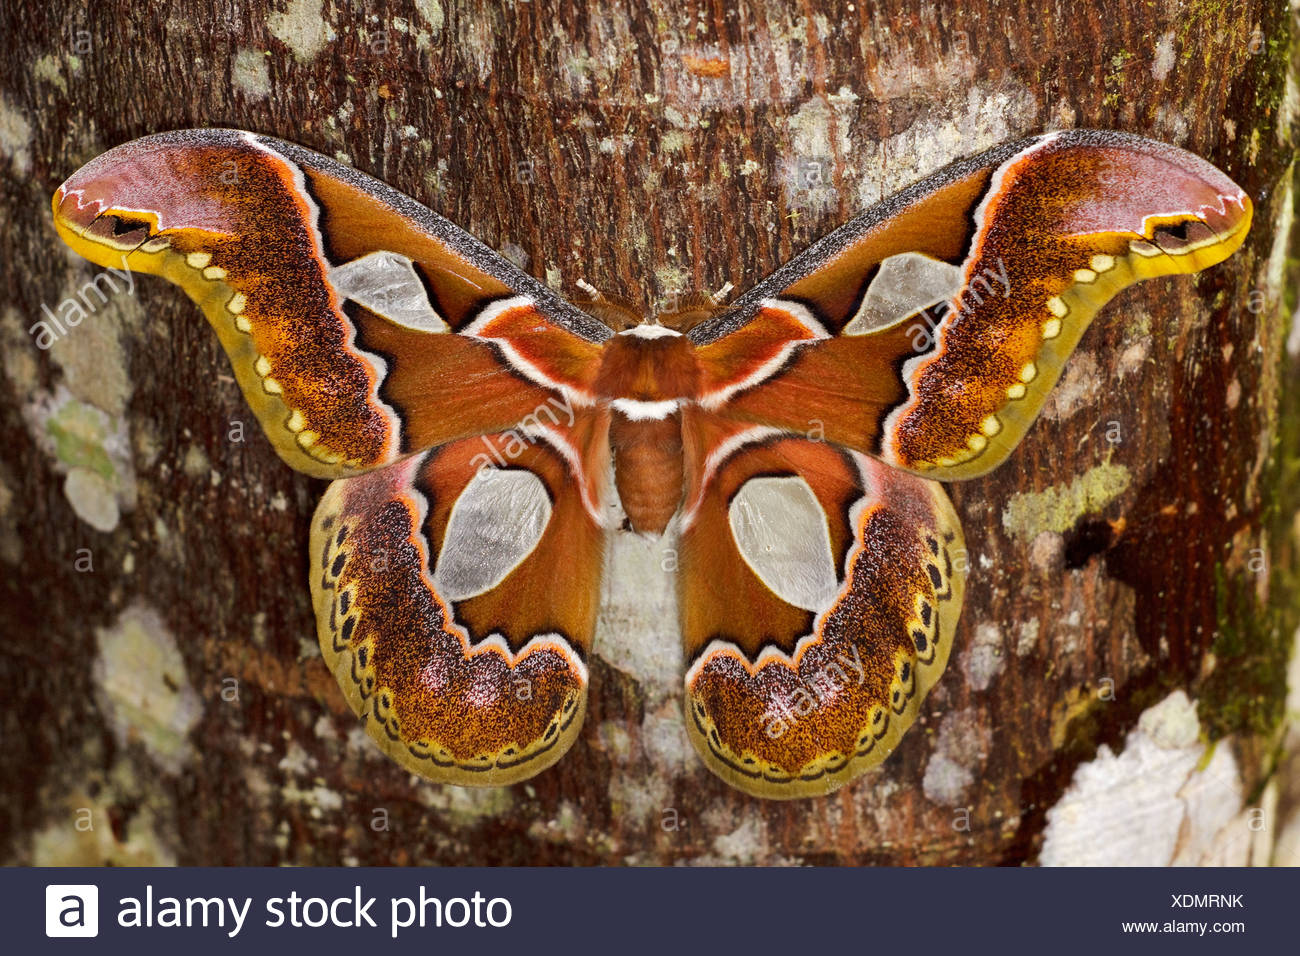 A large moth perched on a tree trunk in the Tandayapa Valley of Ecuador. - Stock Image